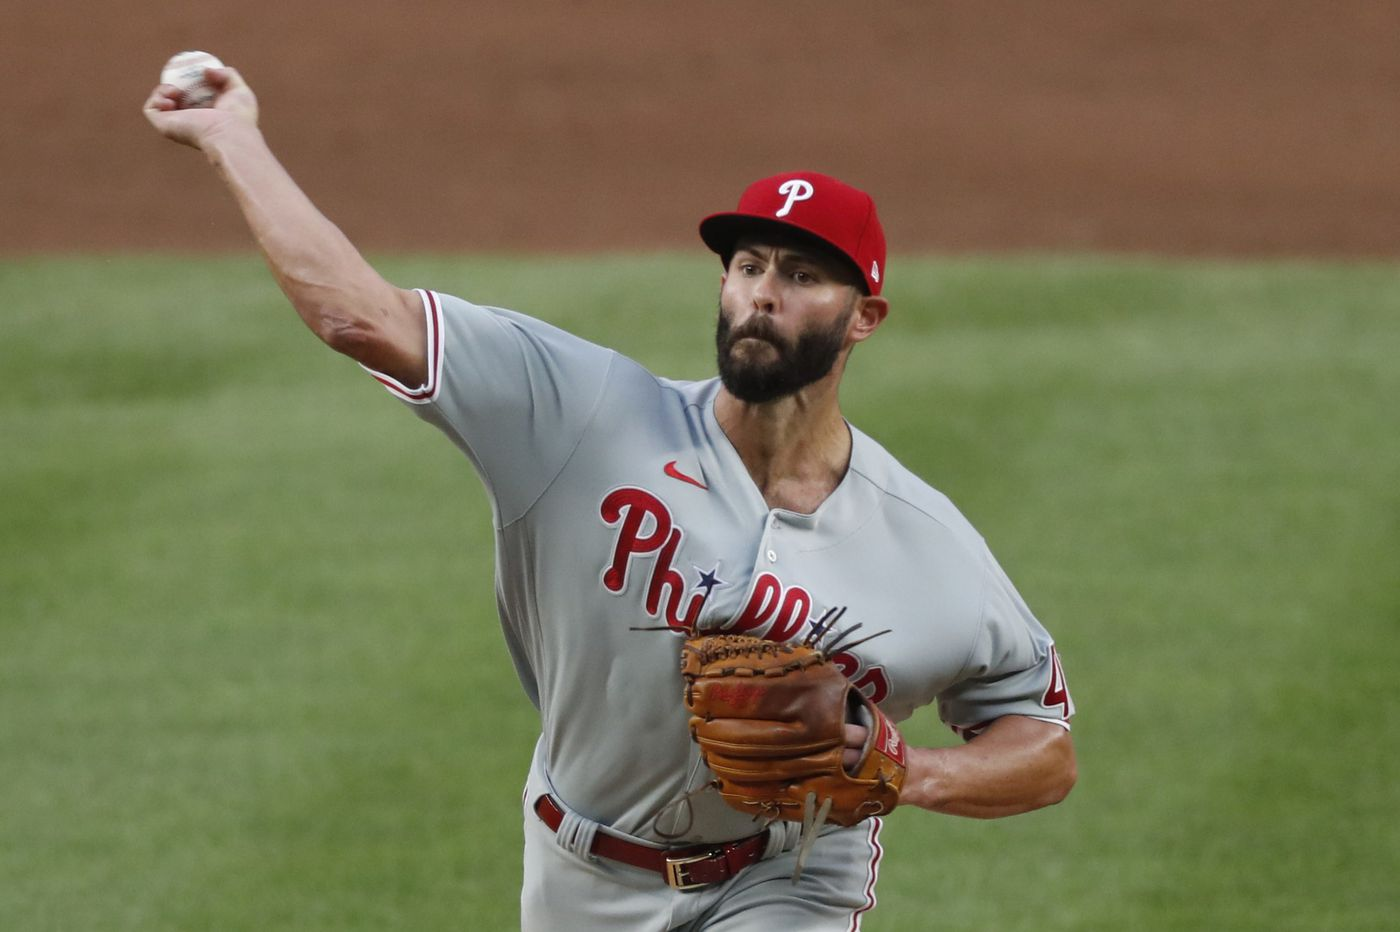 The Phillies, after returning with a rain-delayed loss to the Yankees, now have a hurricane-forced day off | Extra Innings